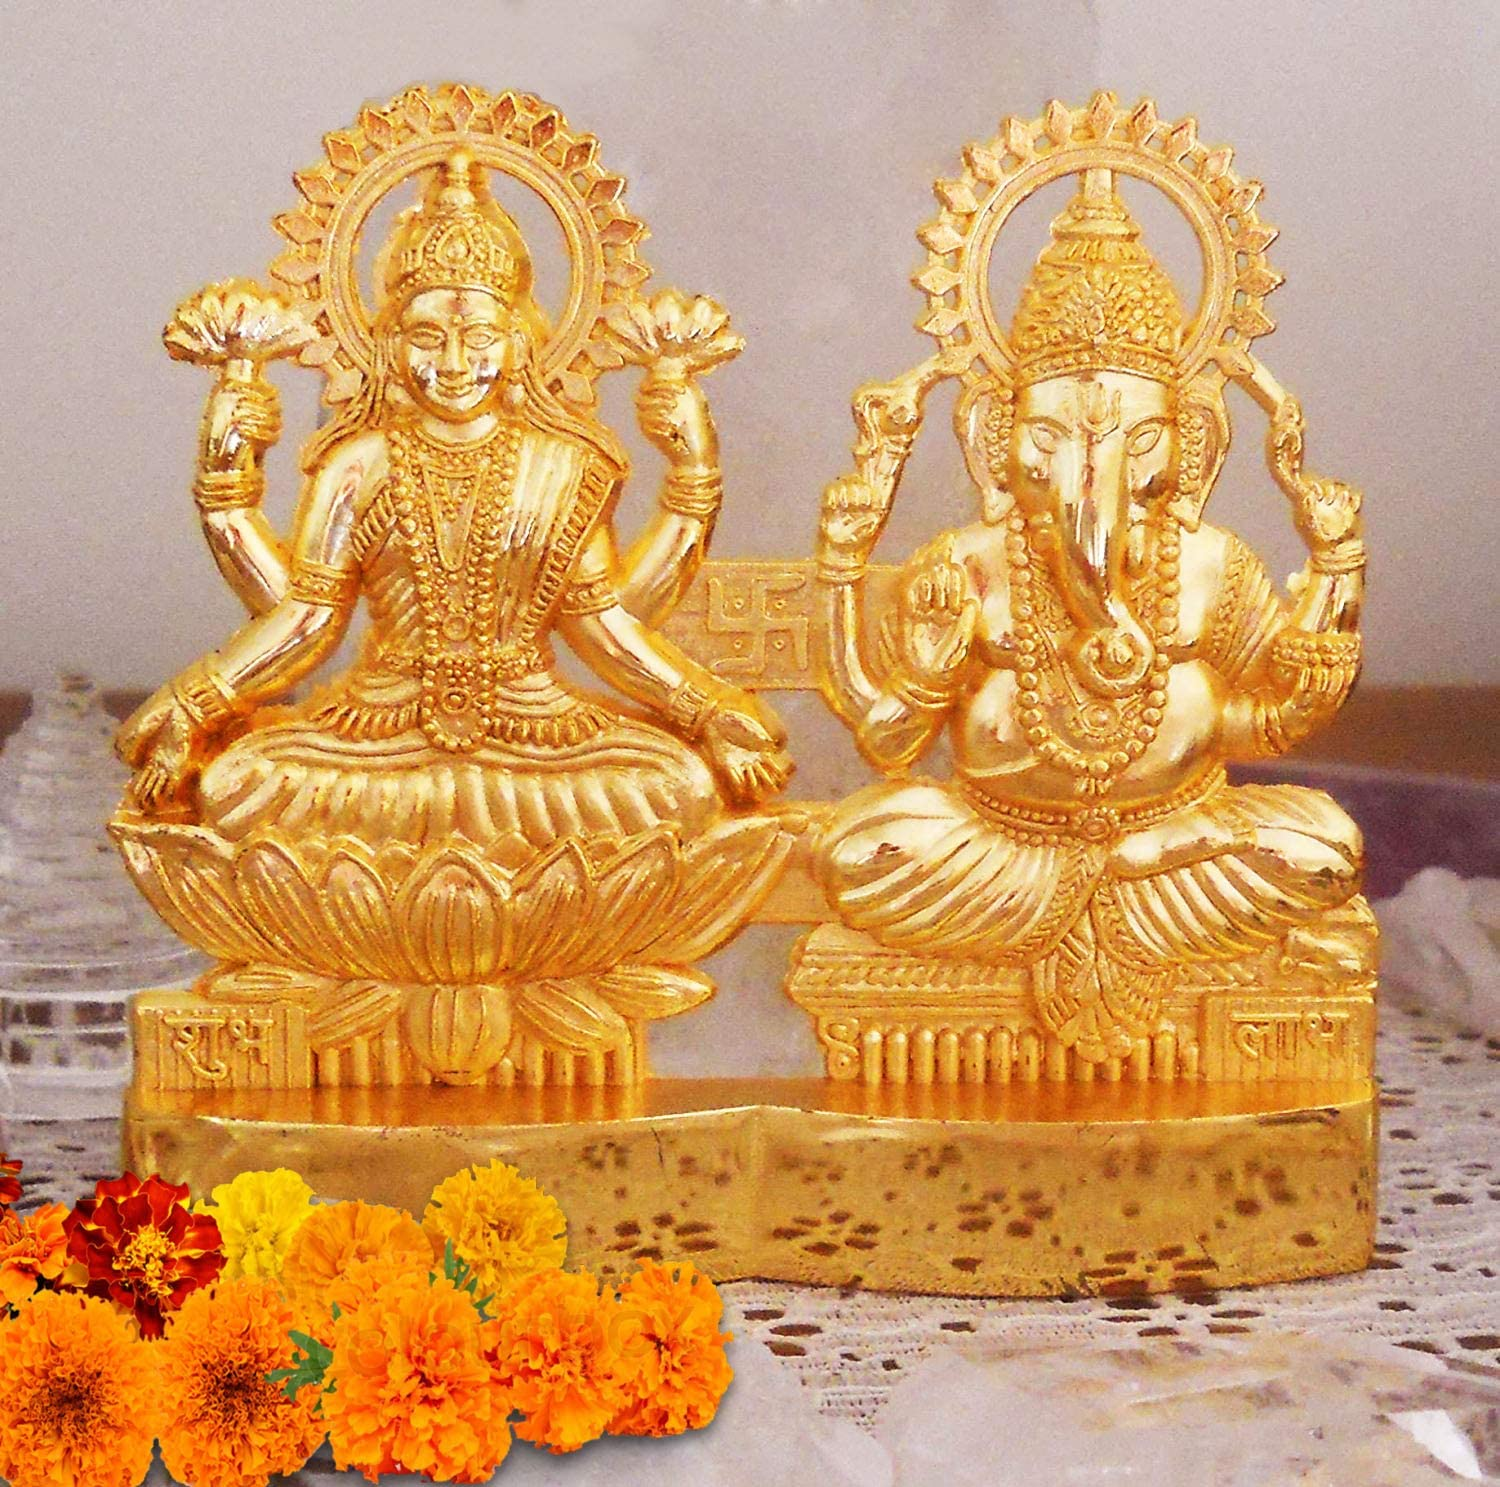 Craftsman 4 inch Hindu God Lakshmi Ganesha Metal Figurine Statue Idol murti Set for Home Indian Diwali Festival Pooja puja Decor.Indian Gift Items